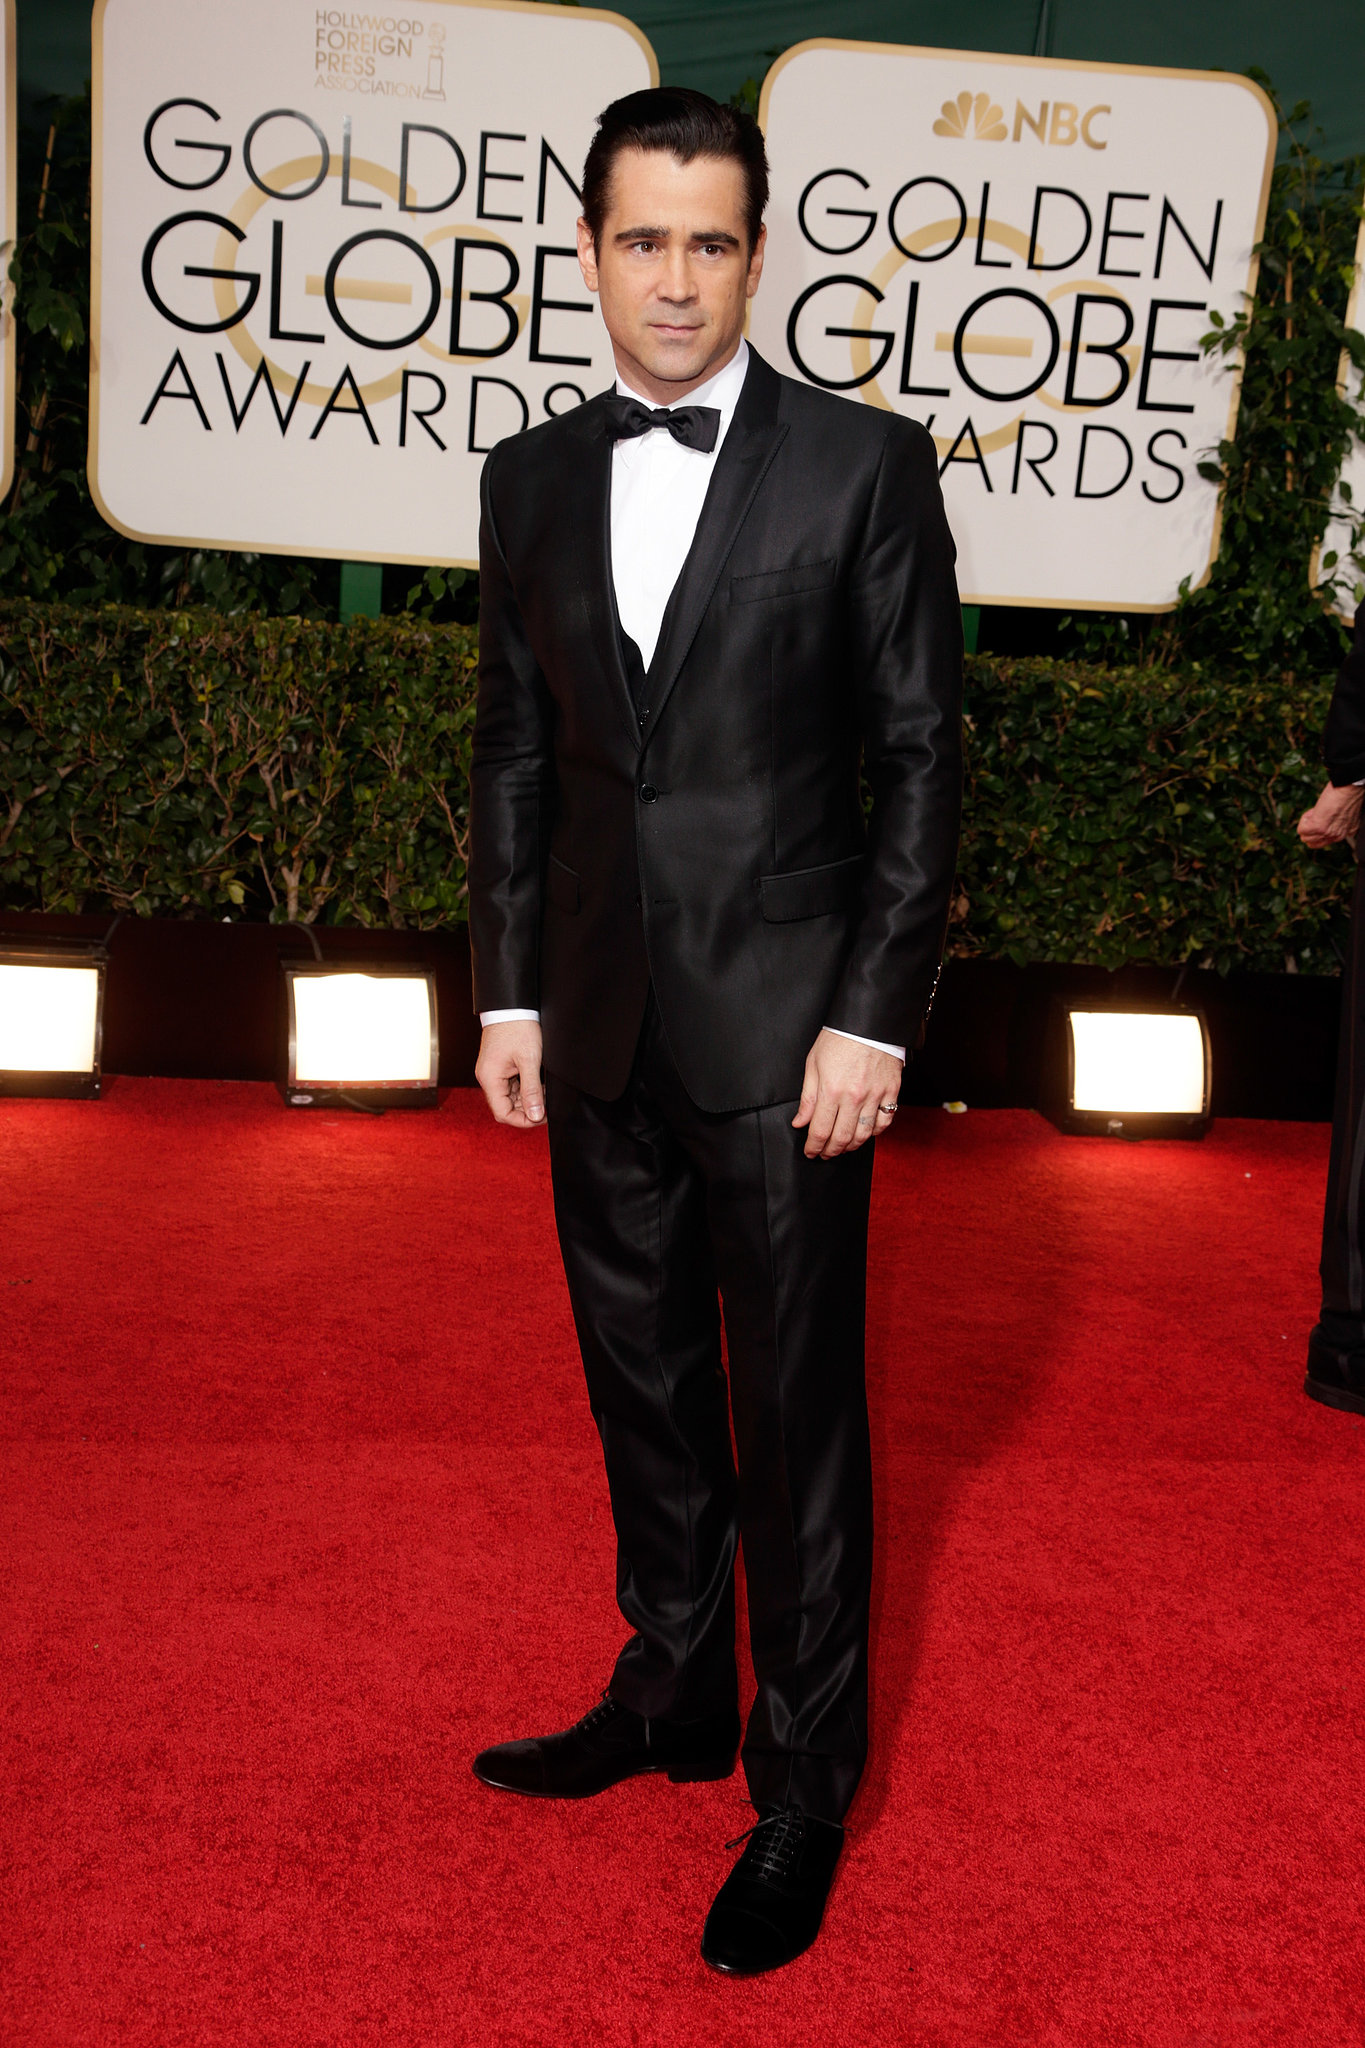 Colin Farrell attended the Golden Globes.